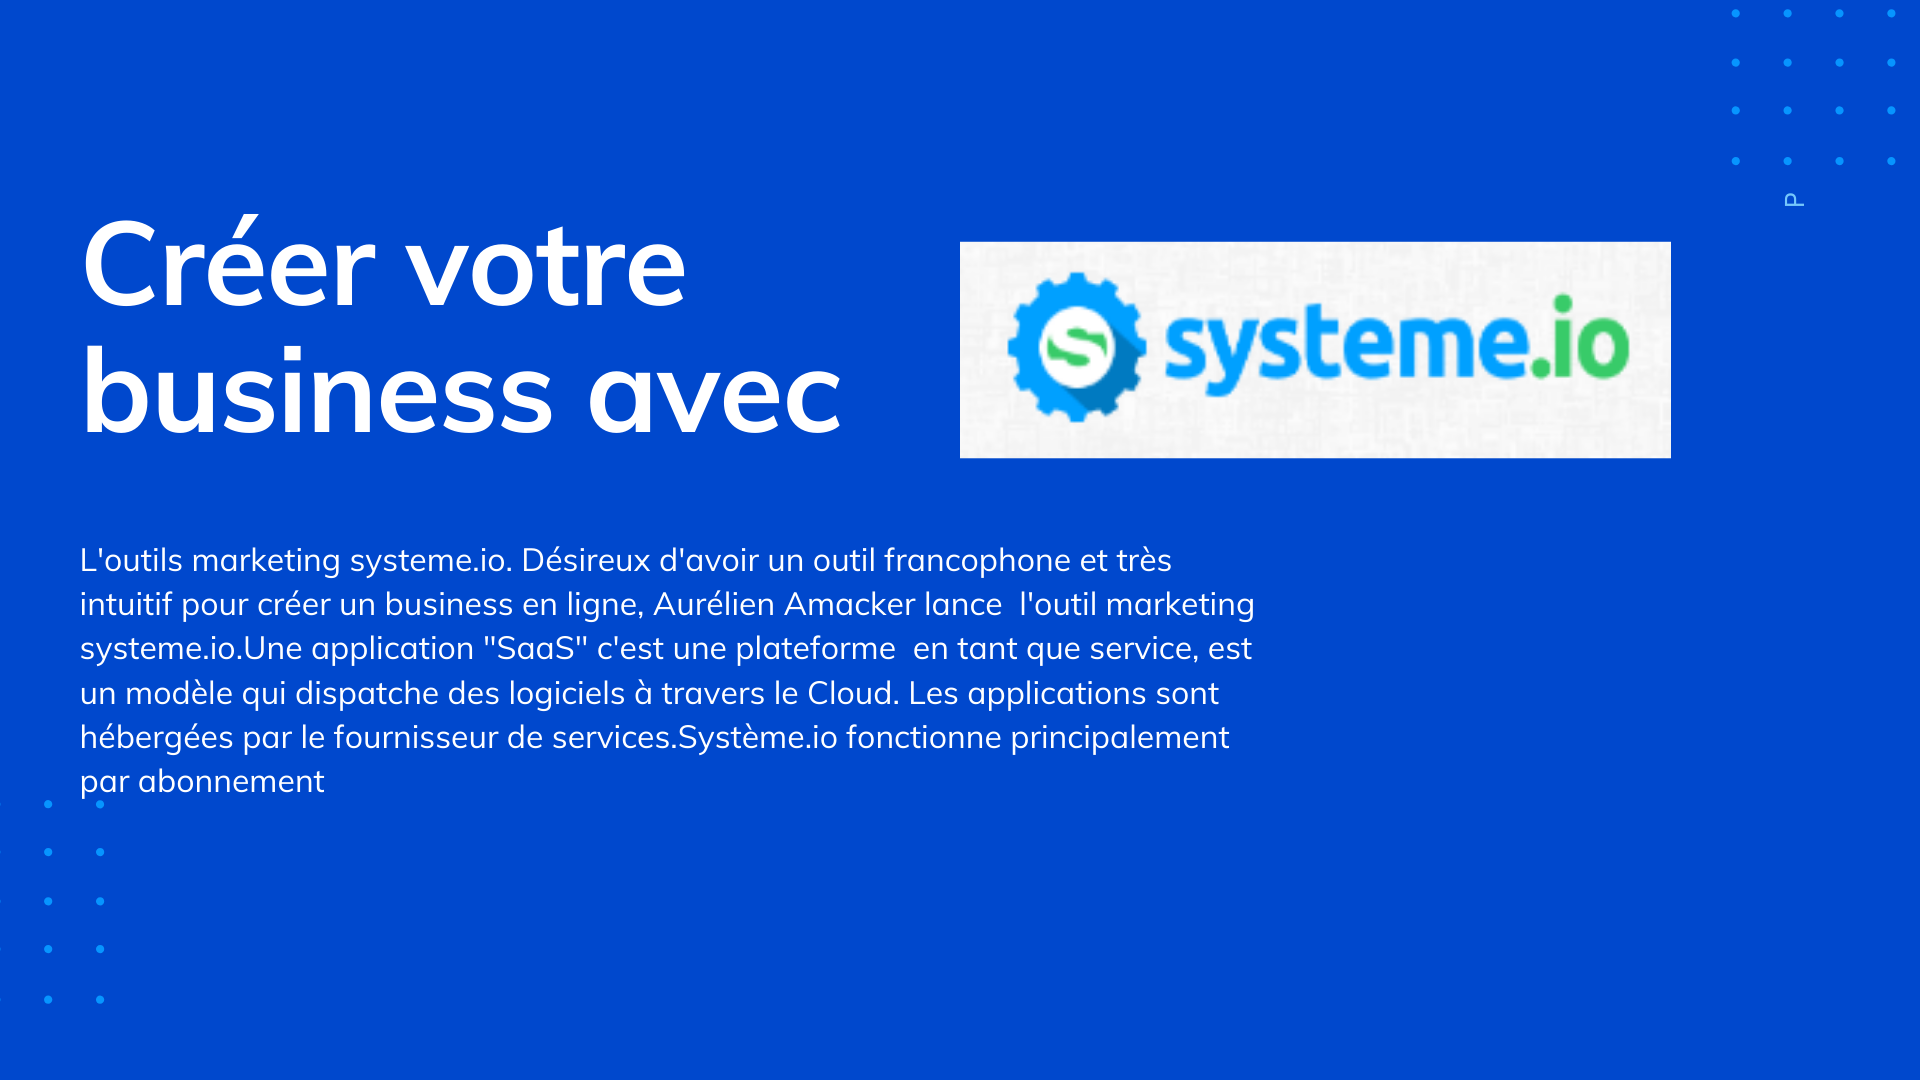 creer un business avec systeme.io